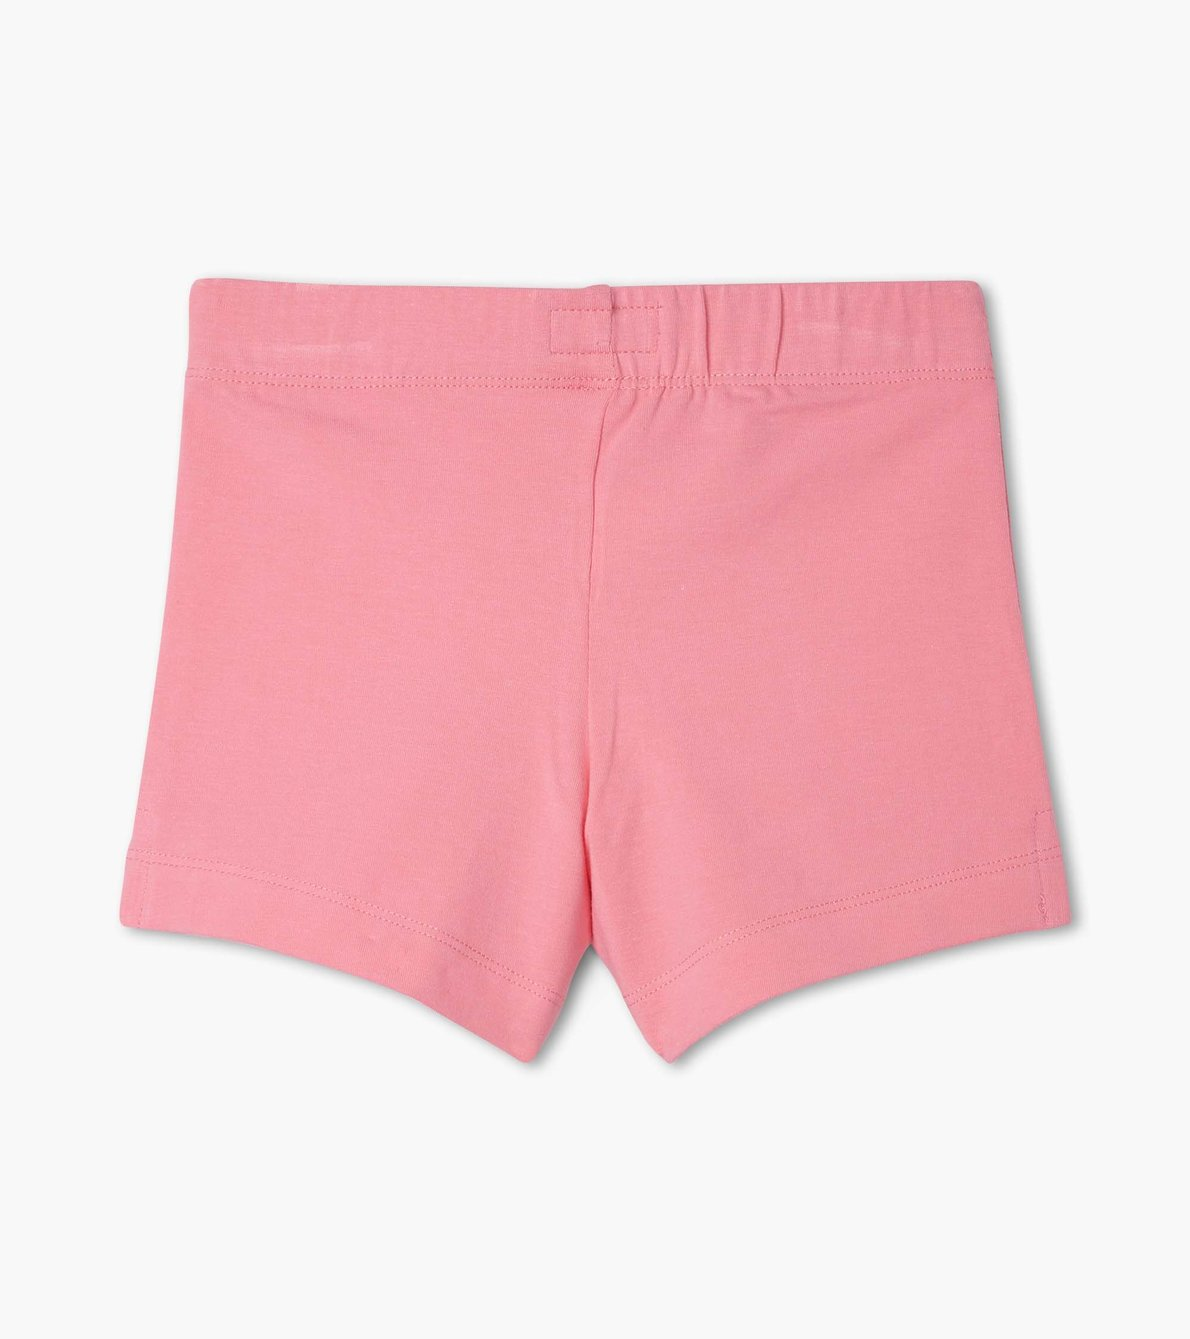 View larger image of Light Pink Bicycle Shorts